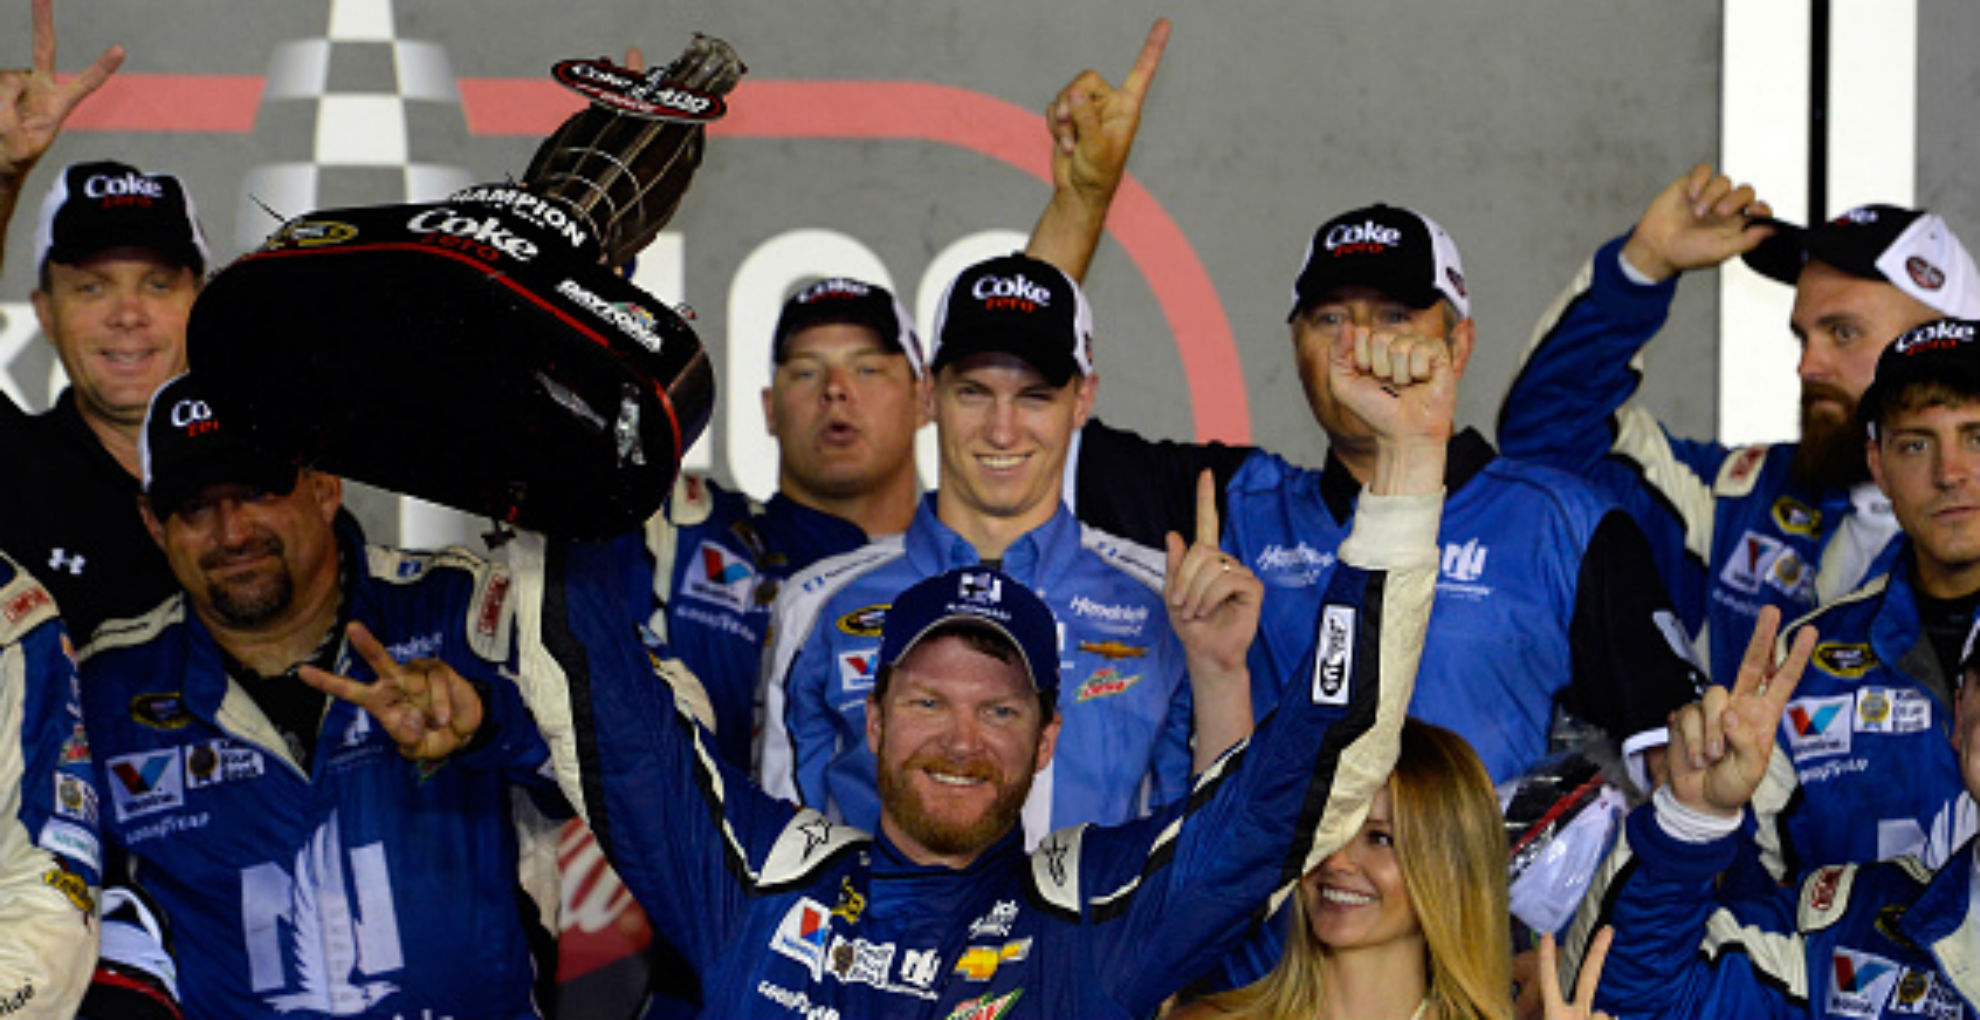 Dale Earnhardt Jr. wins wild, damp Coke Zero 400 at Daytona